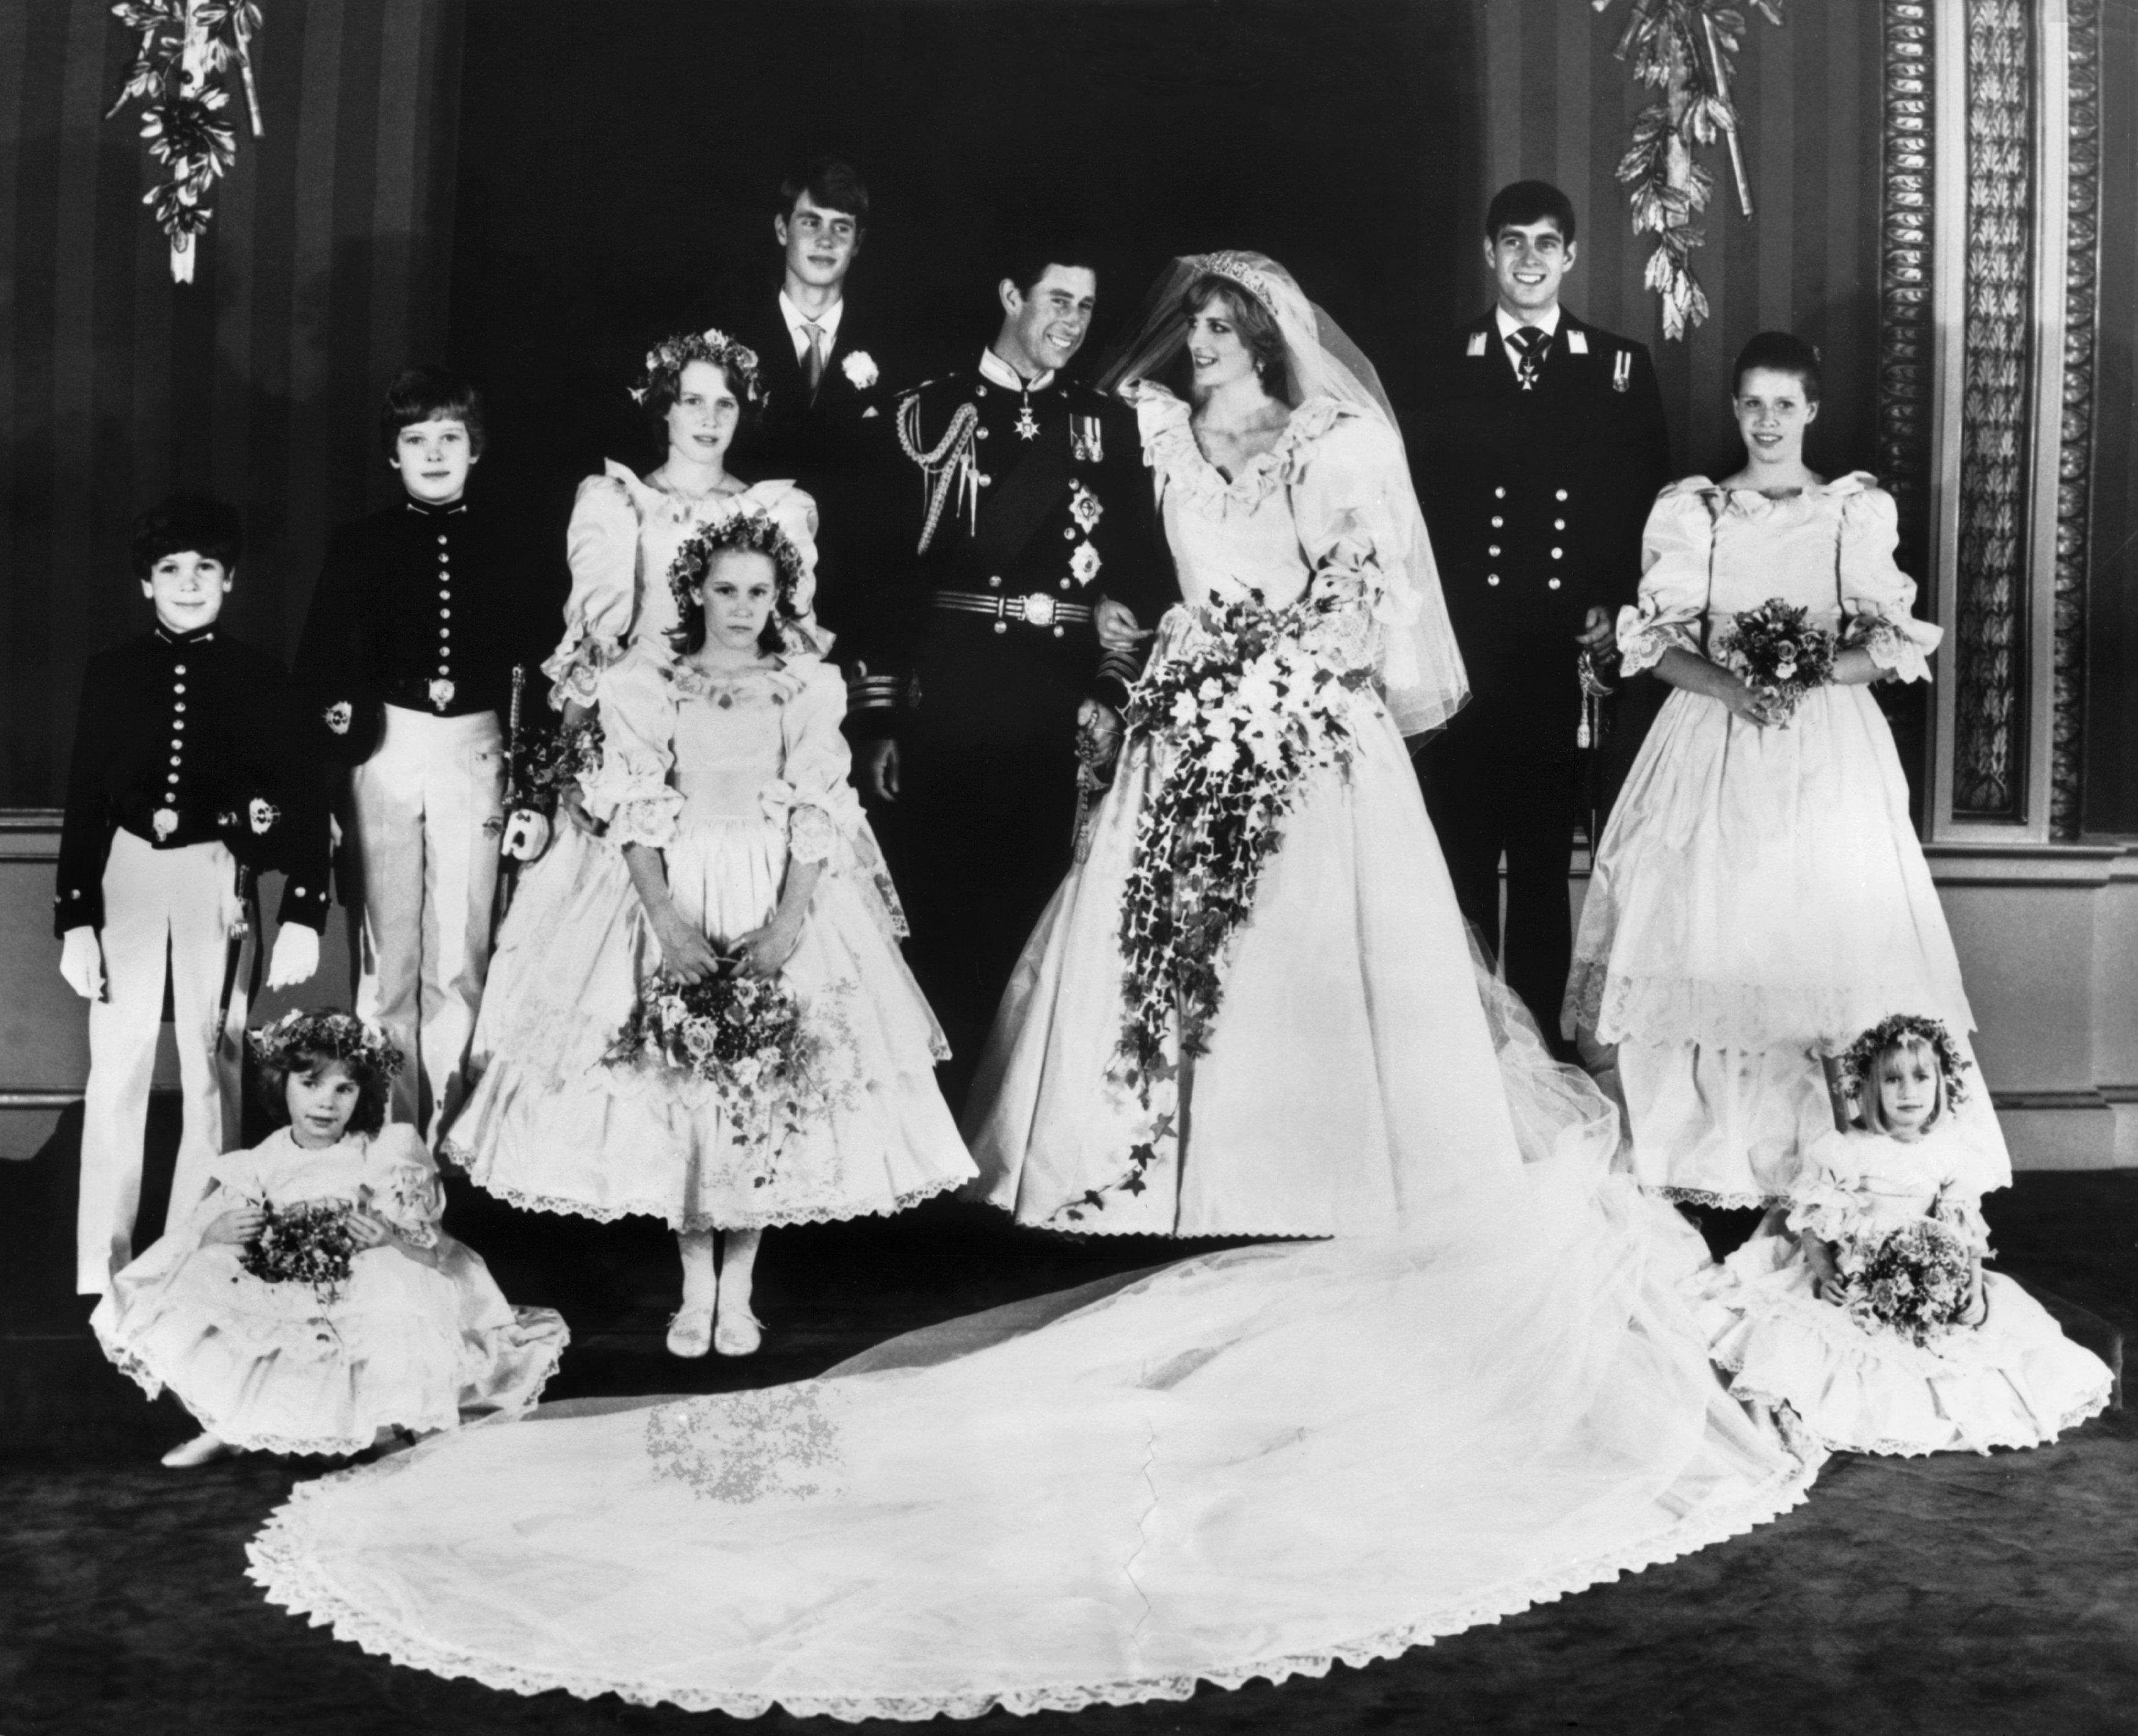 The Princess of Wales in her bridal gown at Buckingham Palace after her marriage to Prince Charles at St. Paul's cathedral in London on July 29, 1981. (AP Photo/Press Association)